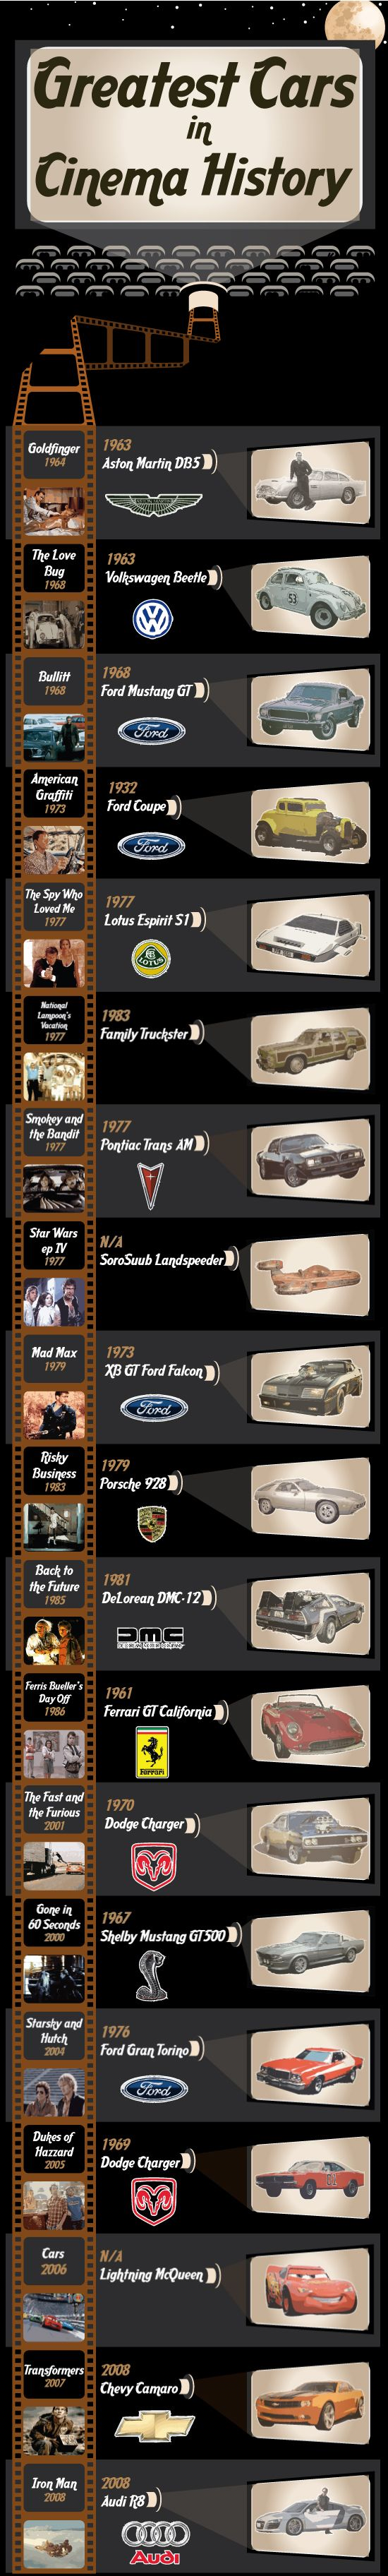 Greatest Cars in Cinema History [Infographic] via @Edmund Li Li Spencer